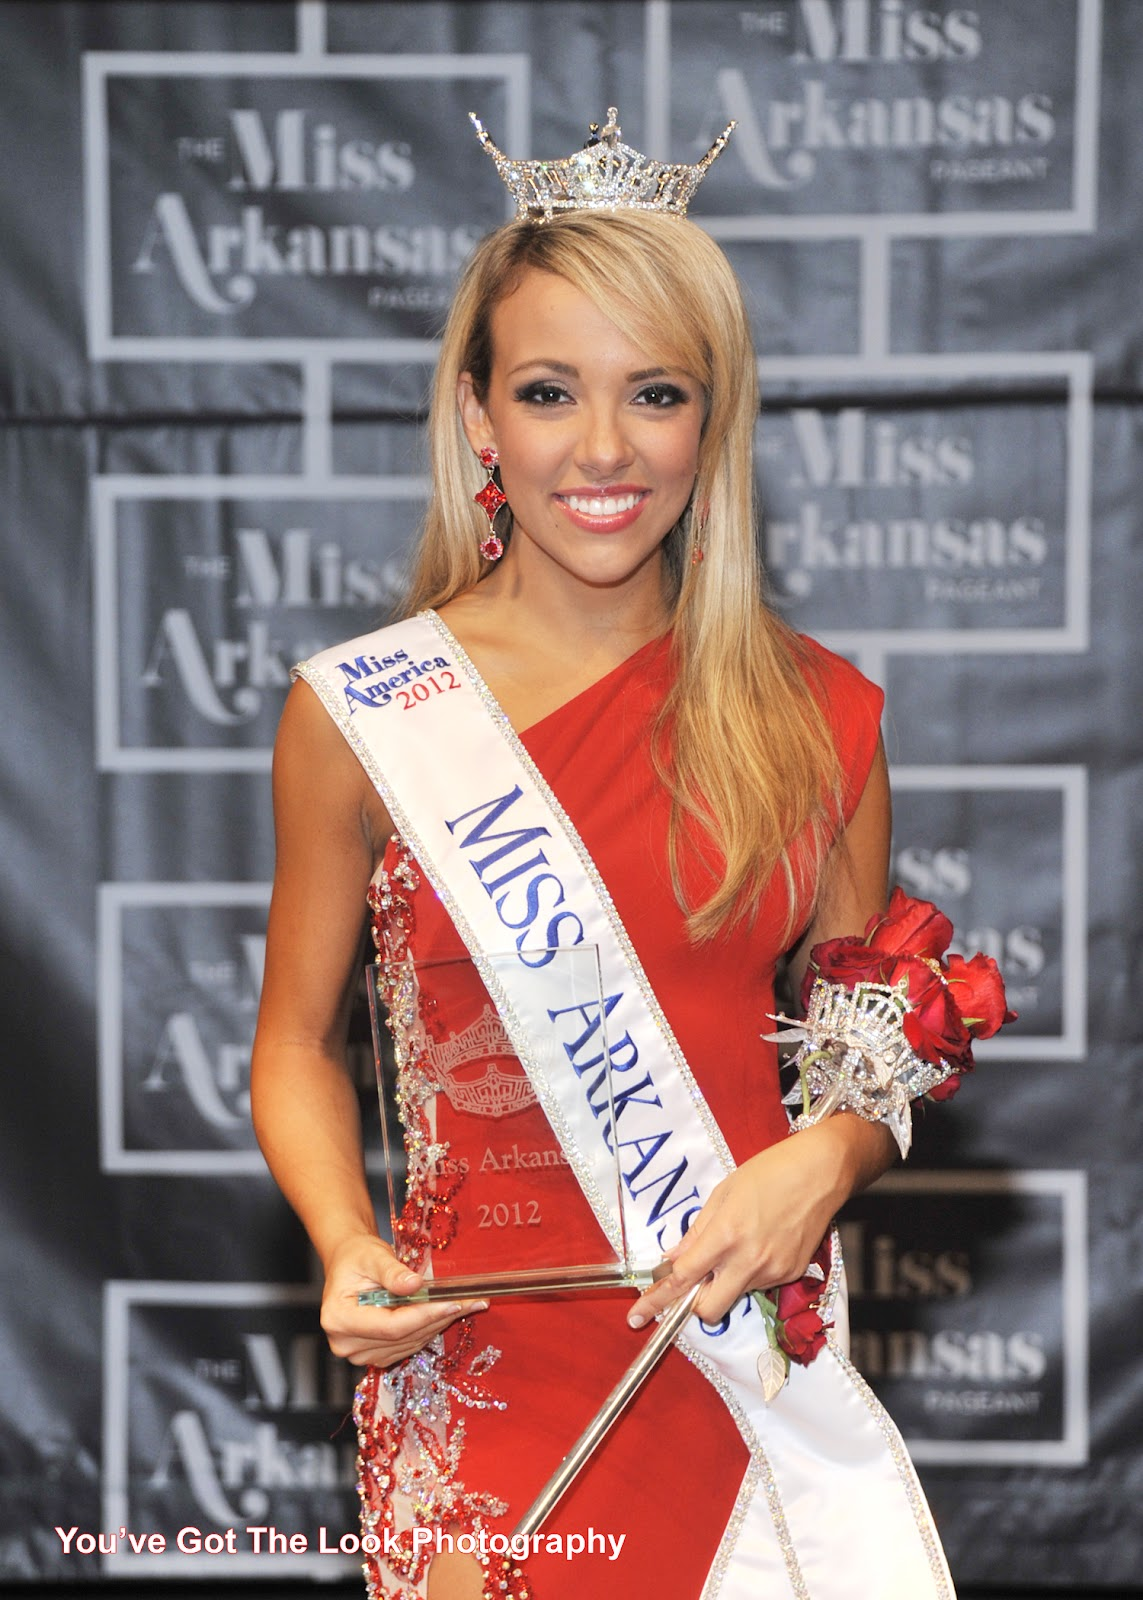 Features Full Report On Miss Arkansas Pageant Results